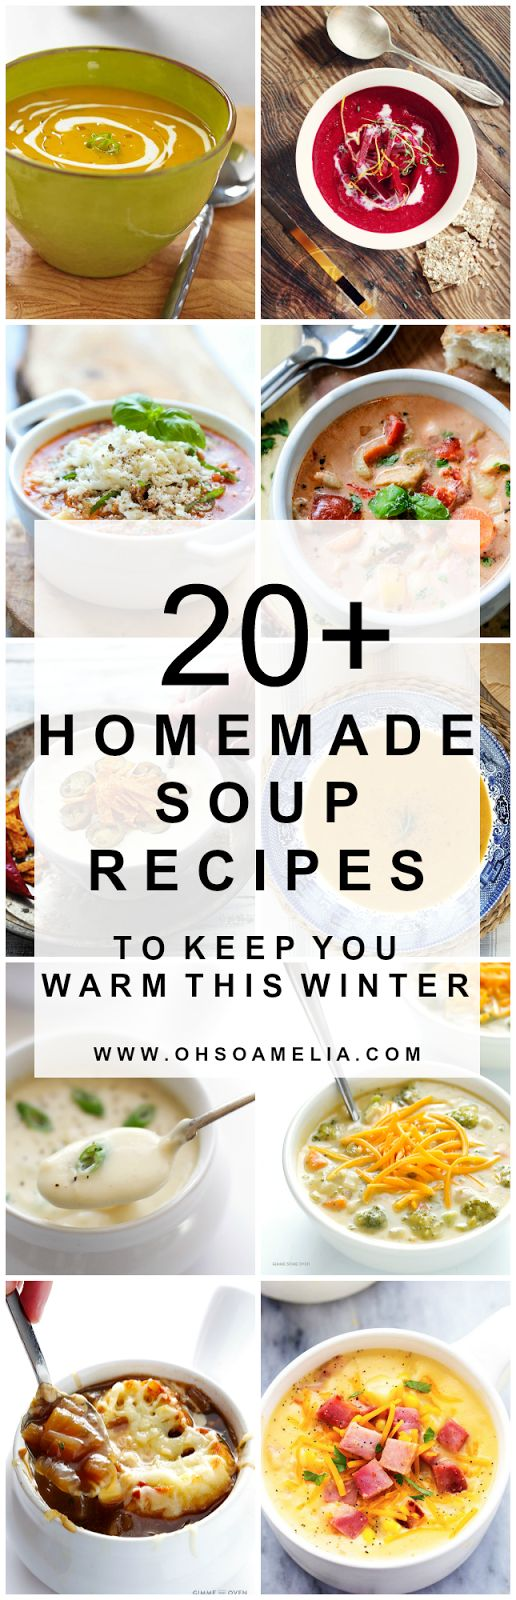 20+ Homemade Soup Recipes To Keep You Warm This Winter | From winter warmers to chicken noodle soup there's something for everyone!